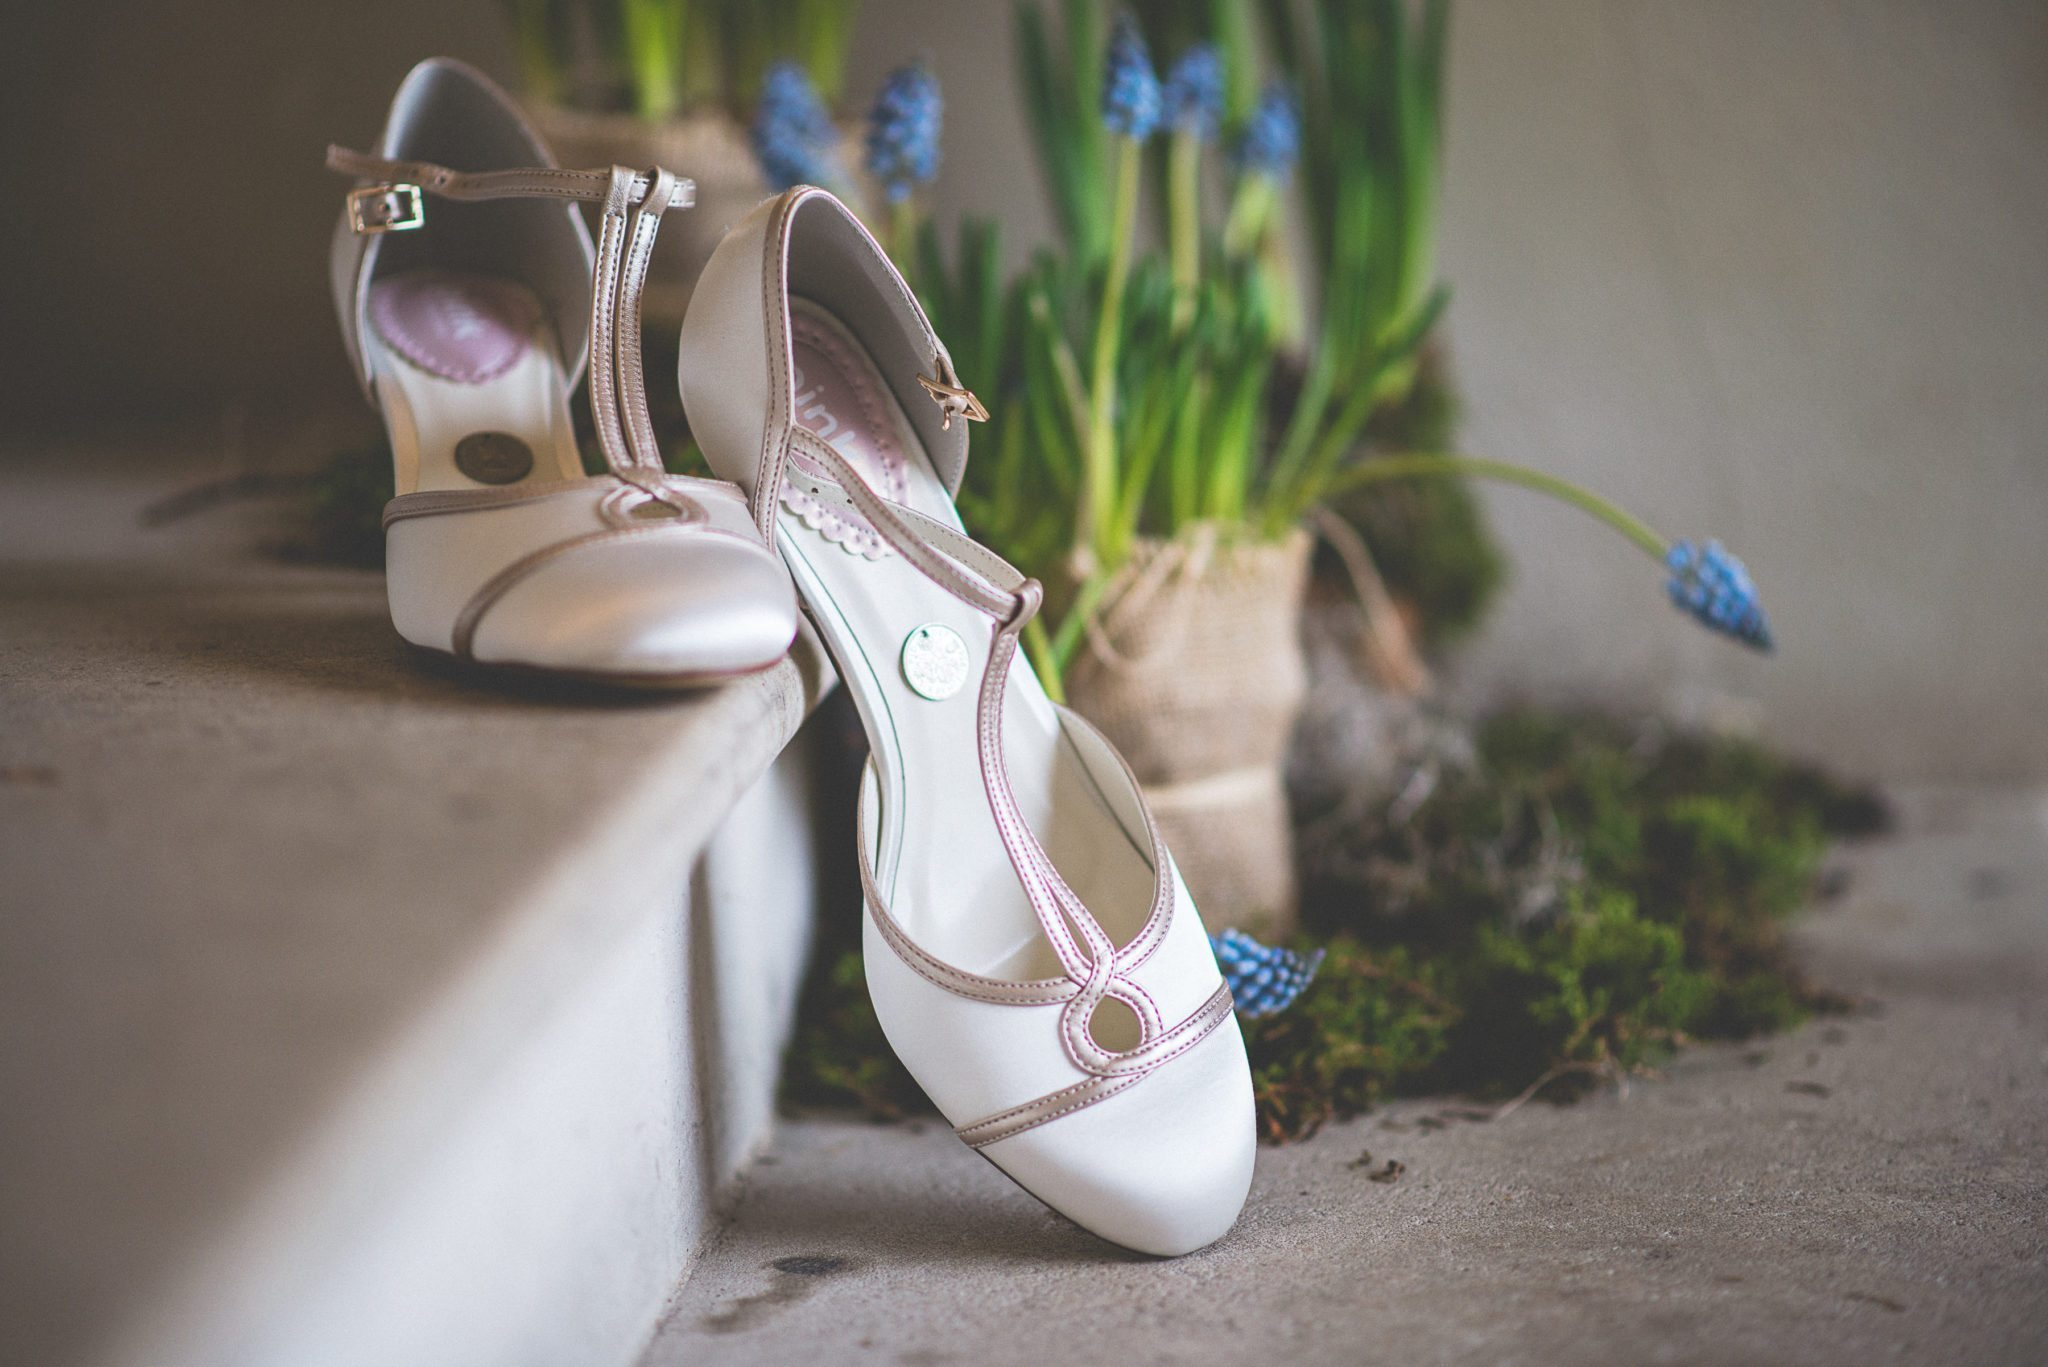 The bride's white shoes, complete with lucky sixpence, sit on a stone step with a pot of grape hyacinth in the background